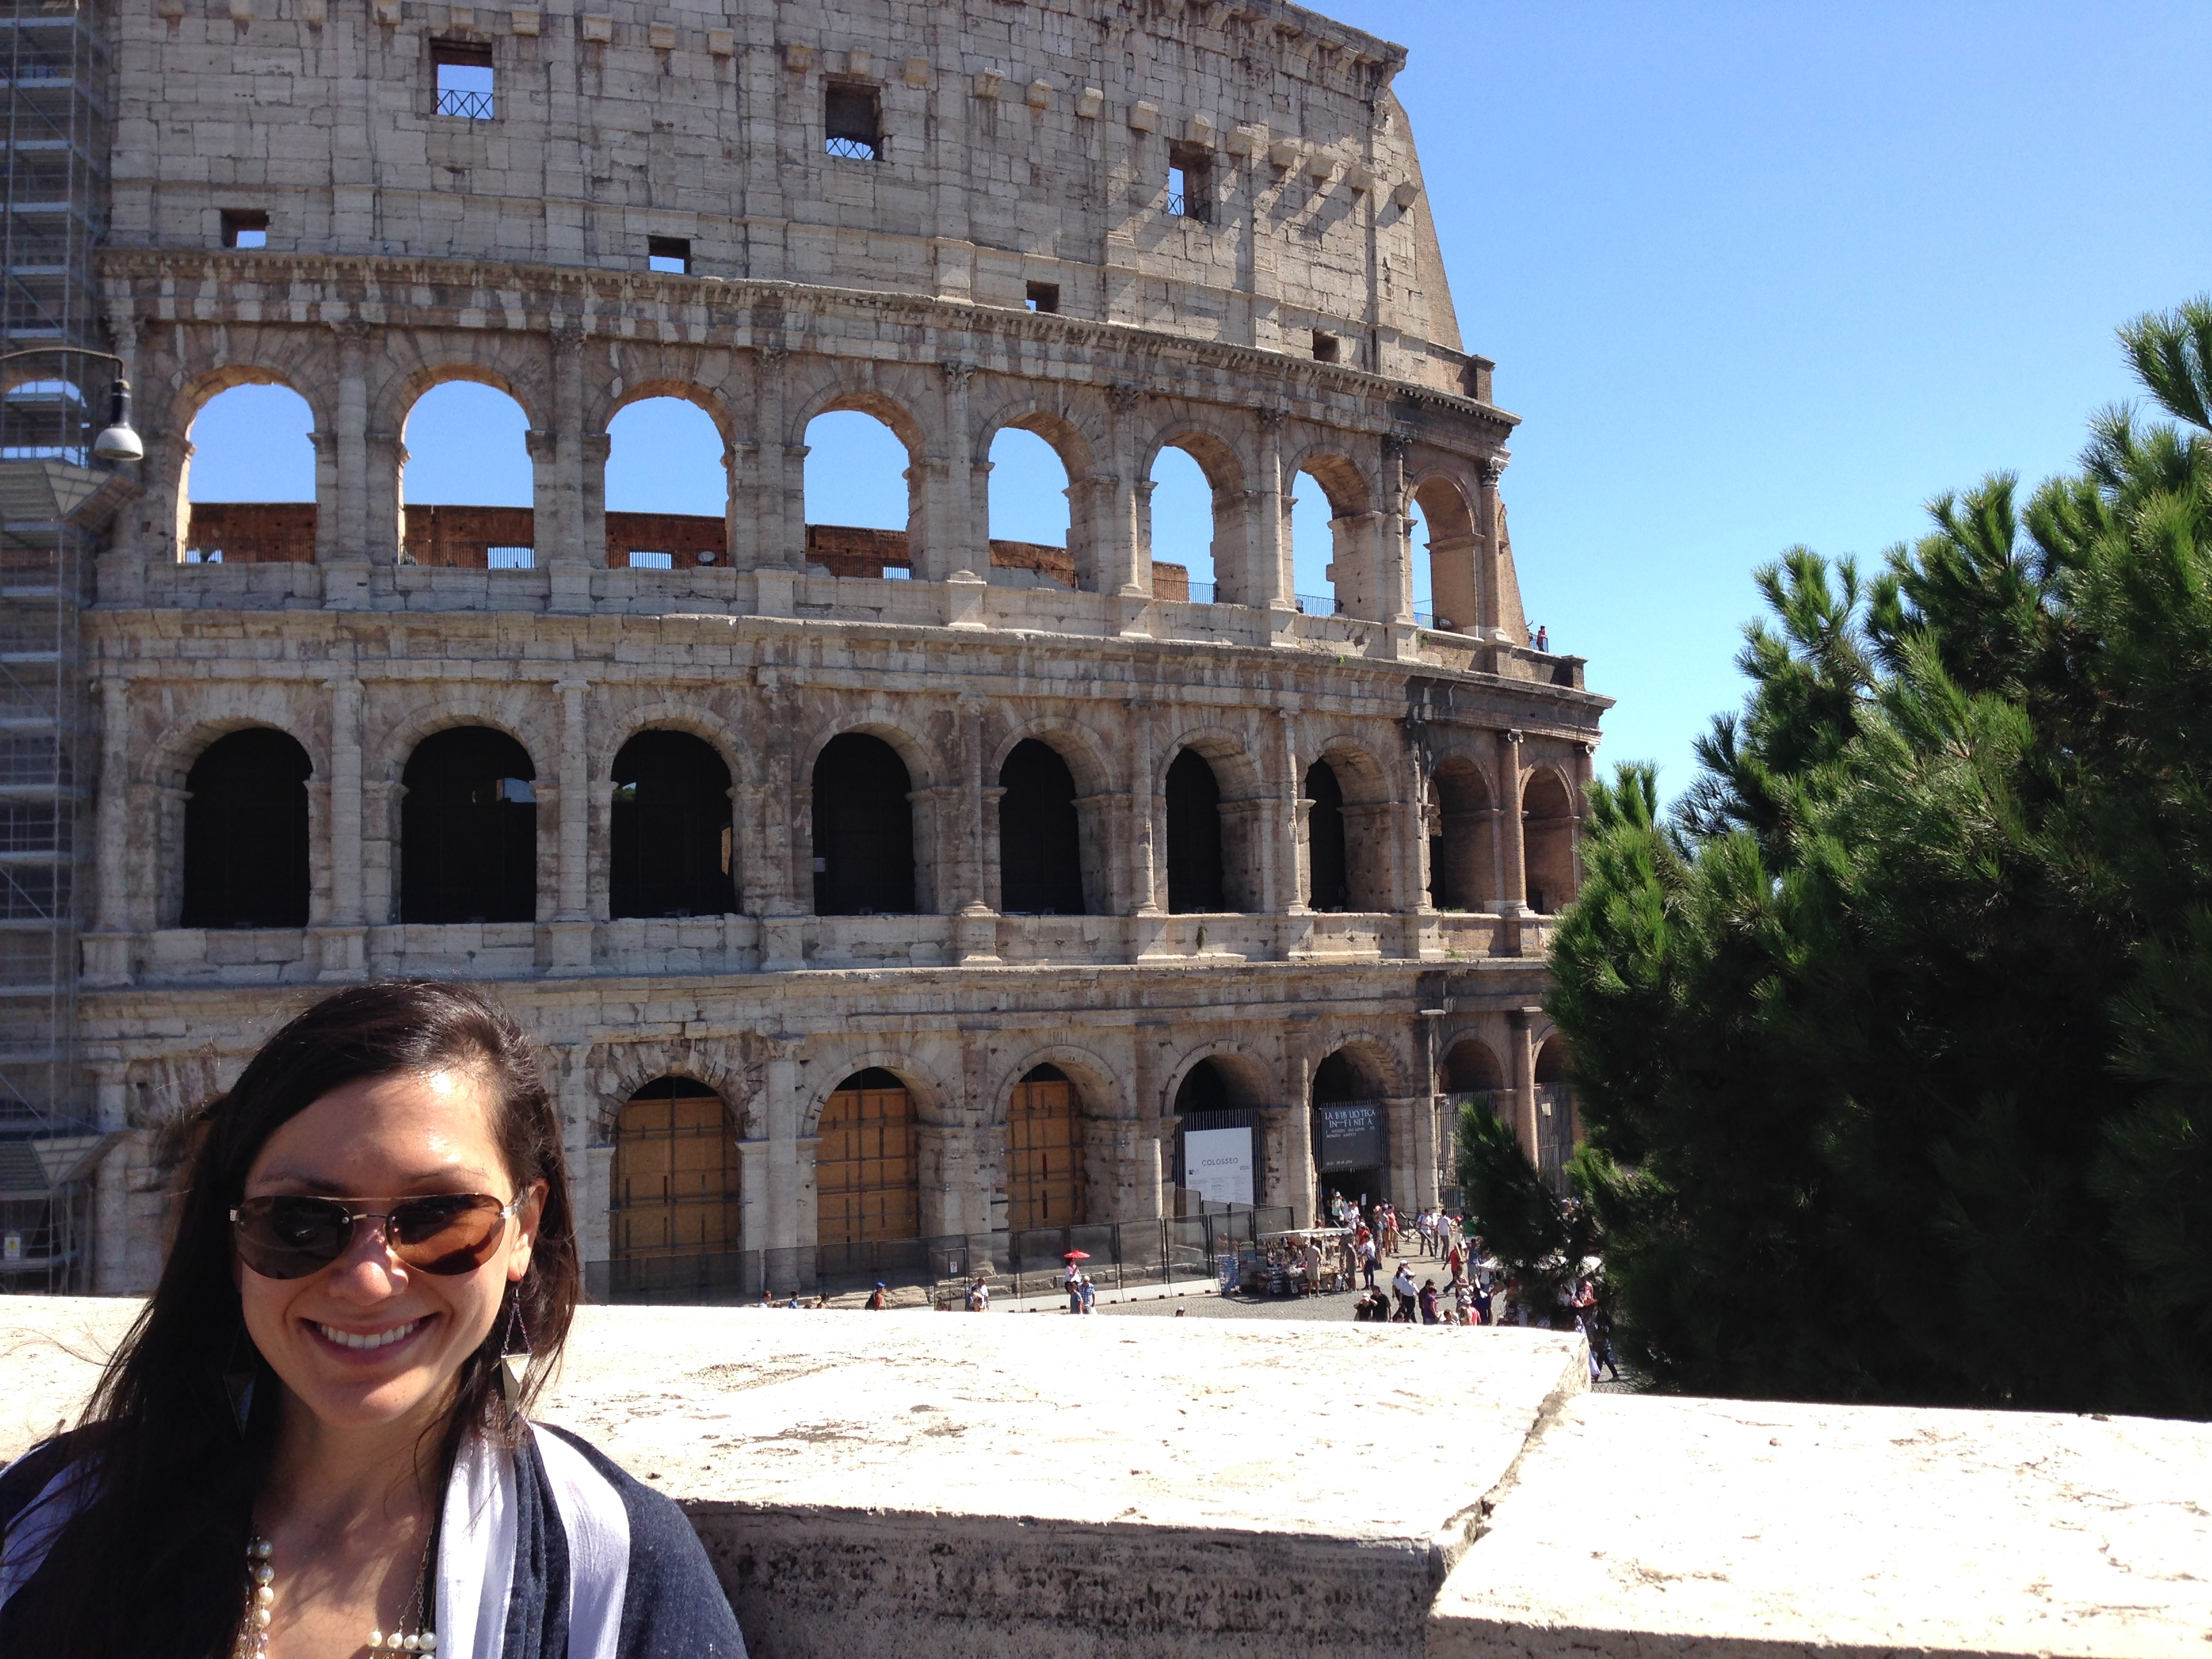 Colossal excitement @ the Eternal City